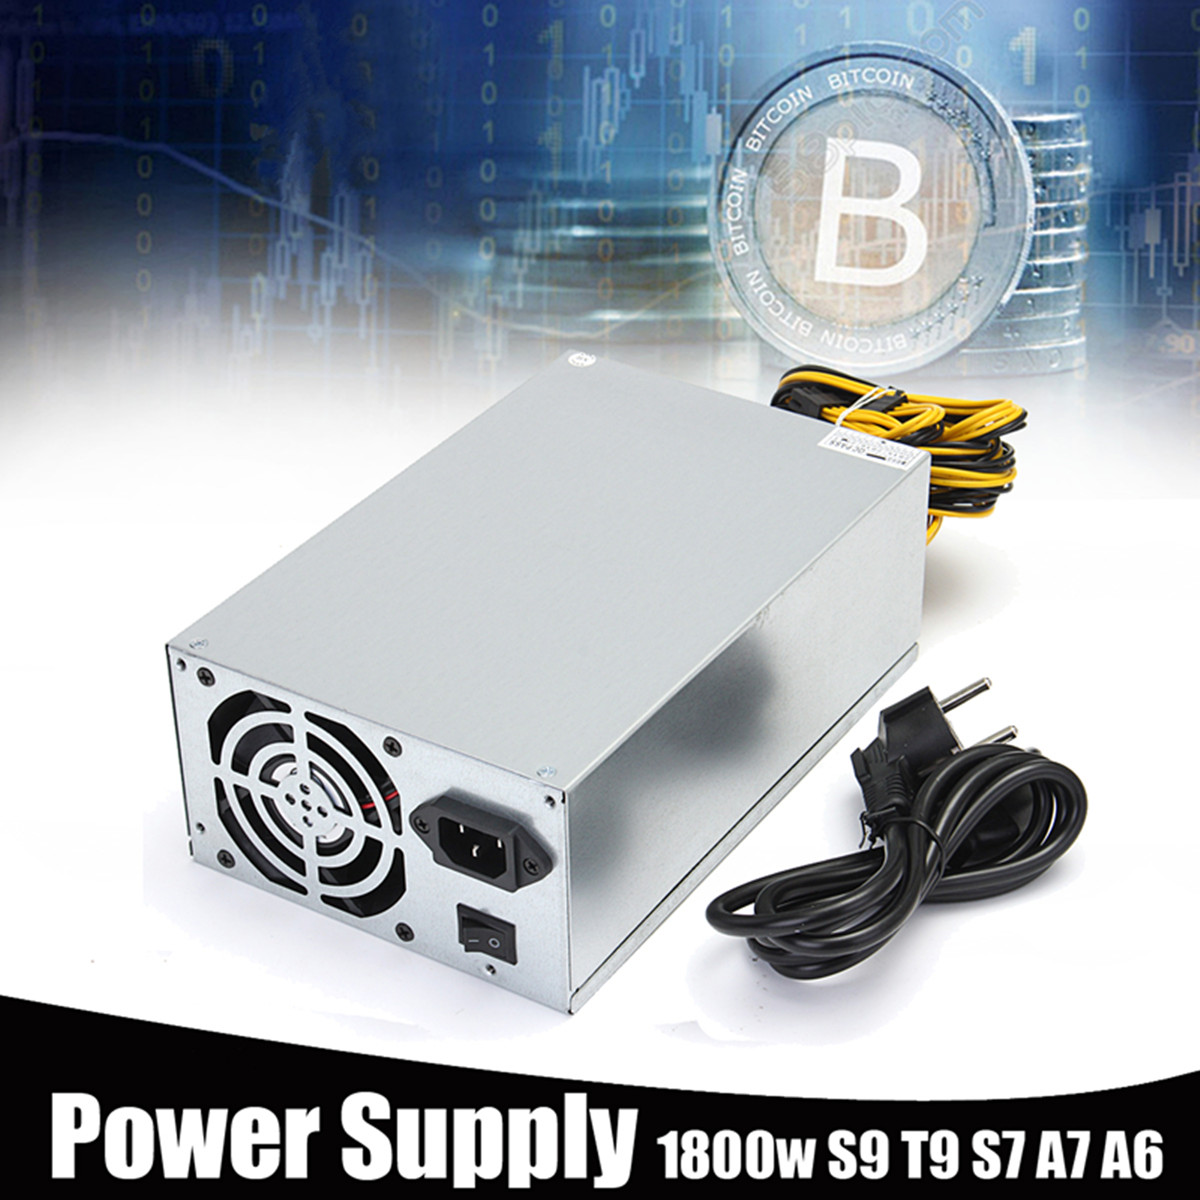 10 x 6 pin 1800W Power Supply Suitable For S9 T9 S7 A7 A6 E9 A4 Miner High Quality Computer power Supply For BTC Mining dash miners riser 1800w psu ant s7 s9 a6 a7 btc eth miner machine server mining board power supply